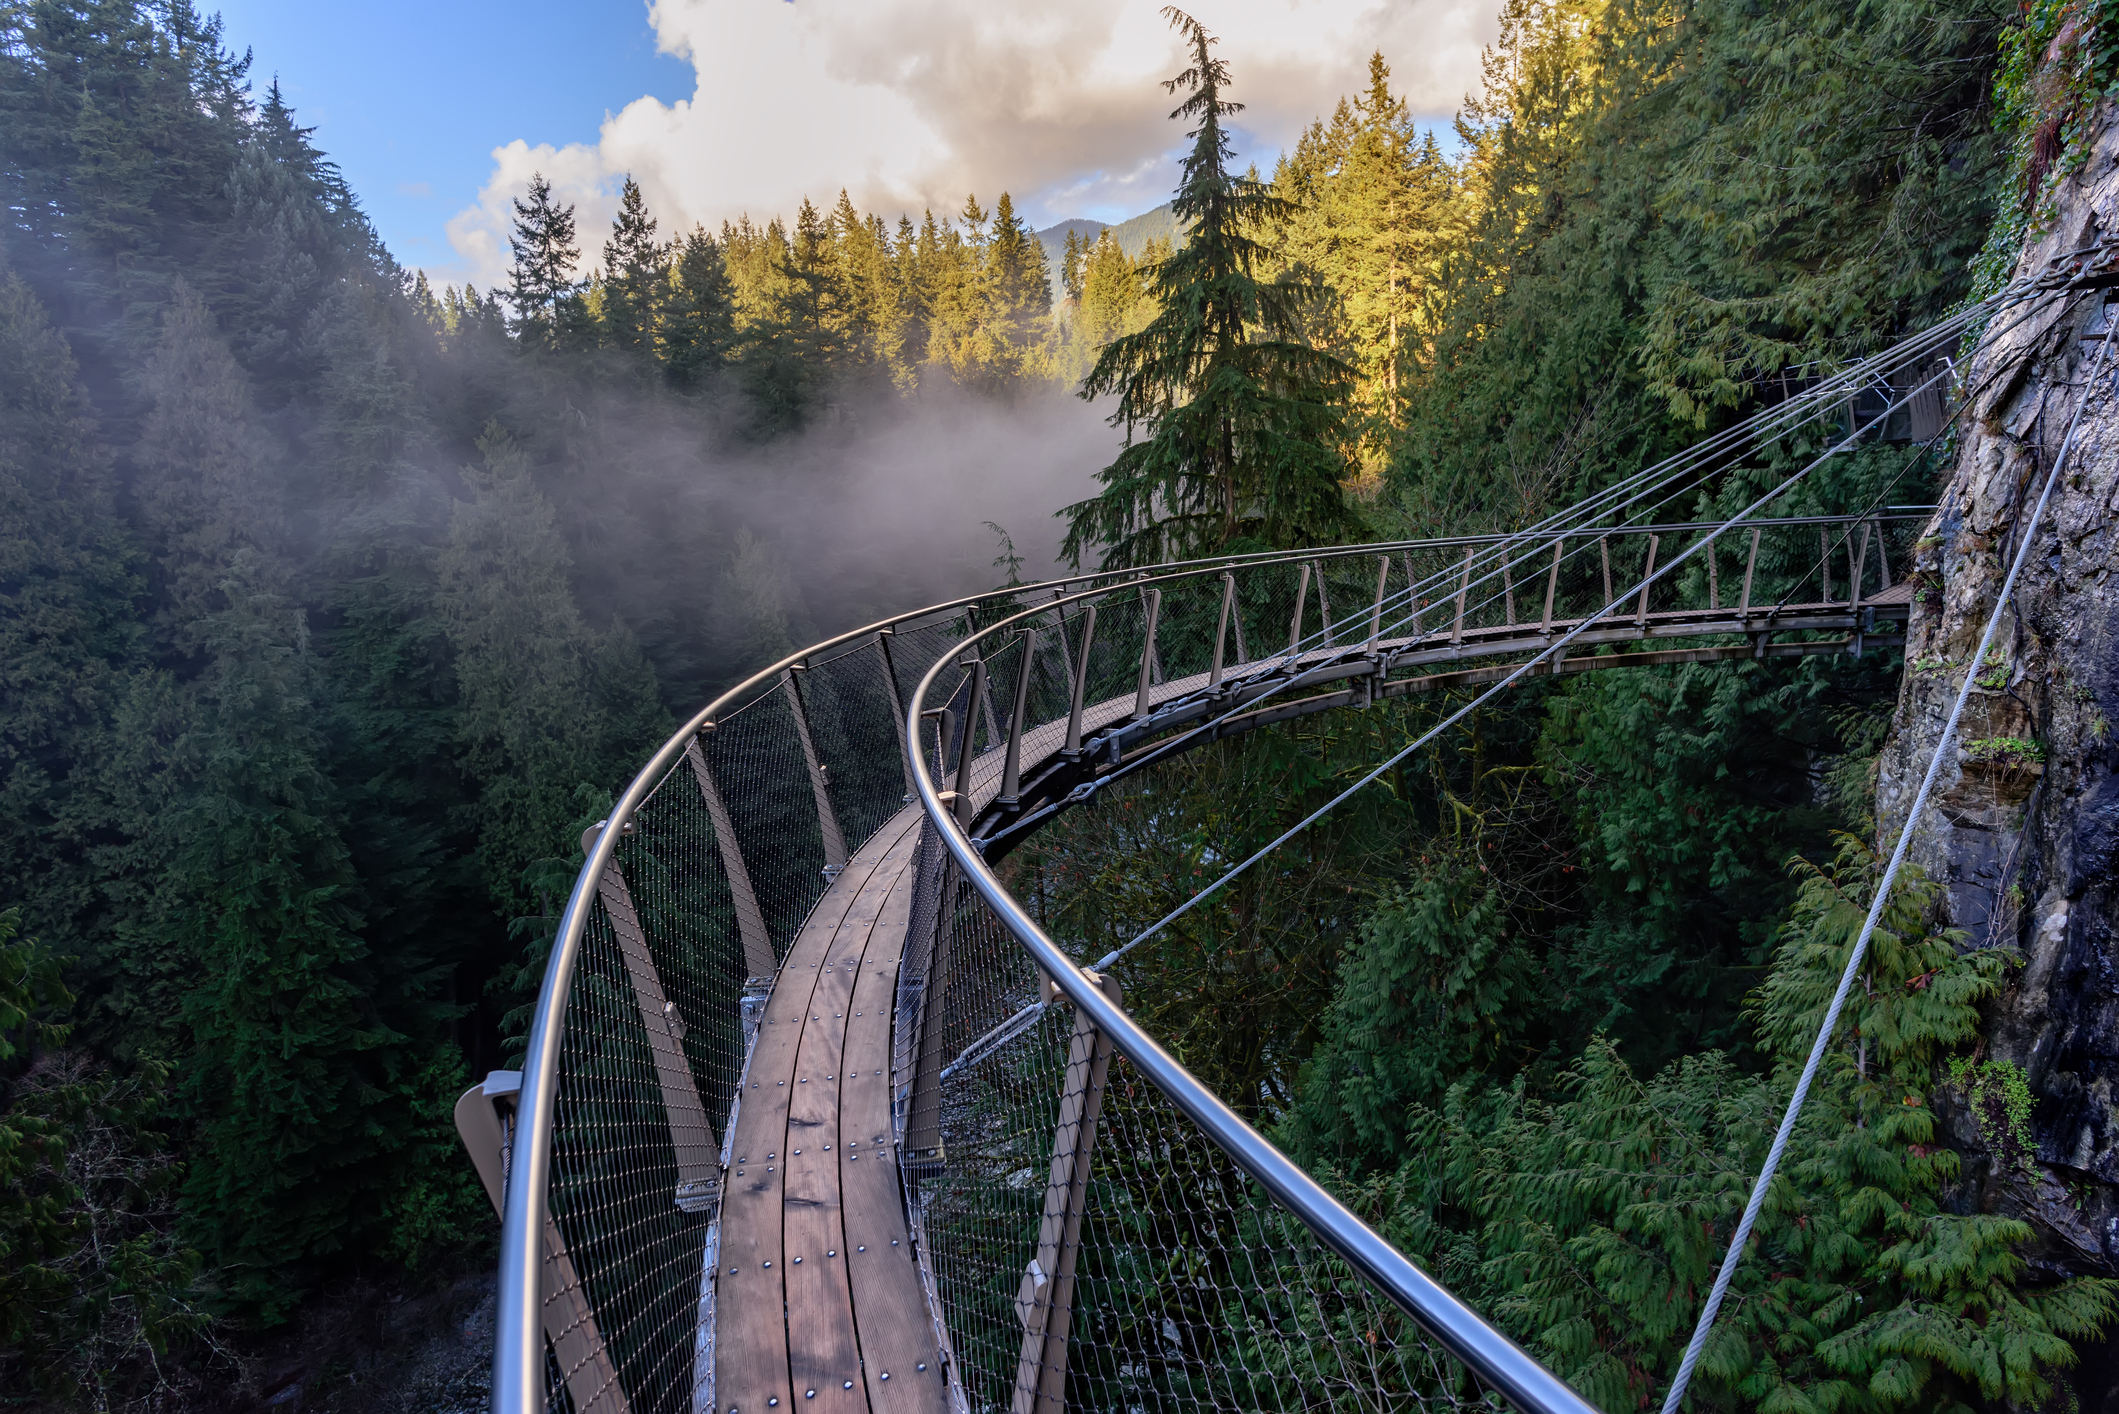 a view from above from the suspension bridge on rough streams of a mountain river among green forests white fog and rocky mountains in a sunny, summer day